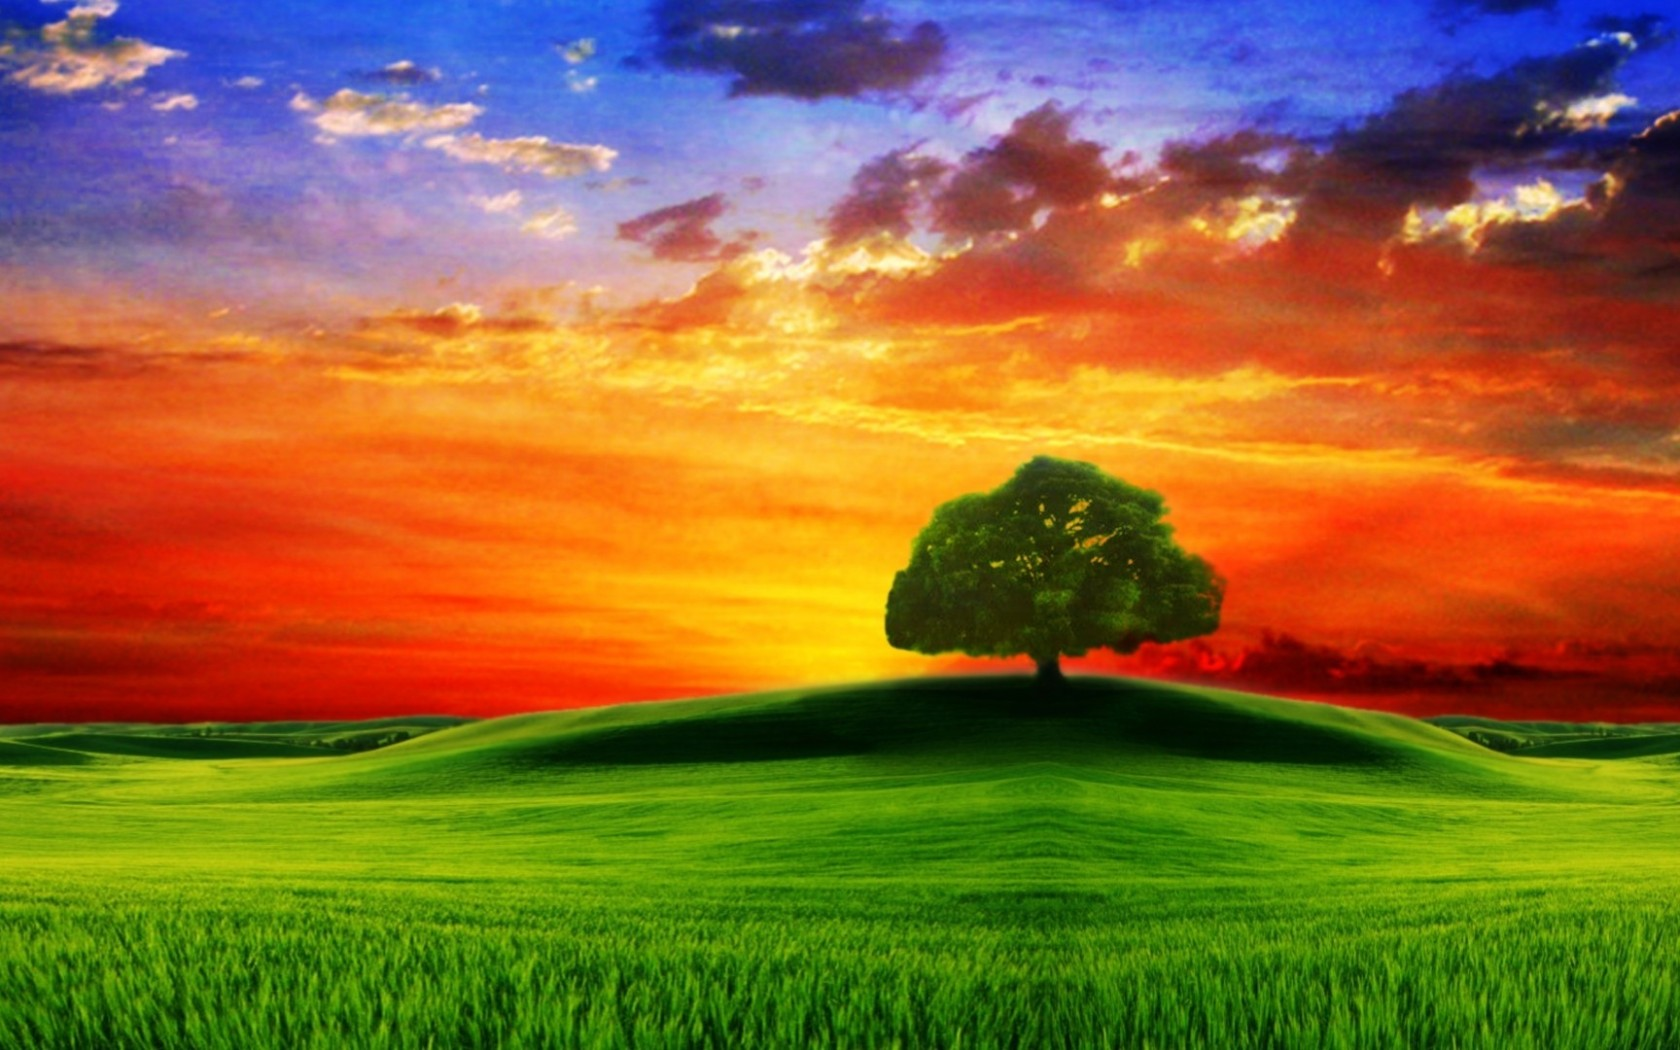 wallpapers-catalogue - drawn hd, tree on the hill at sunset in